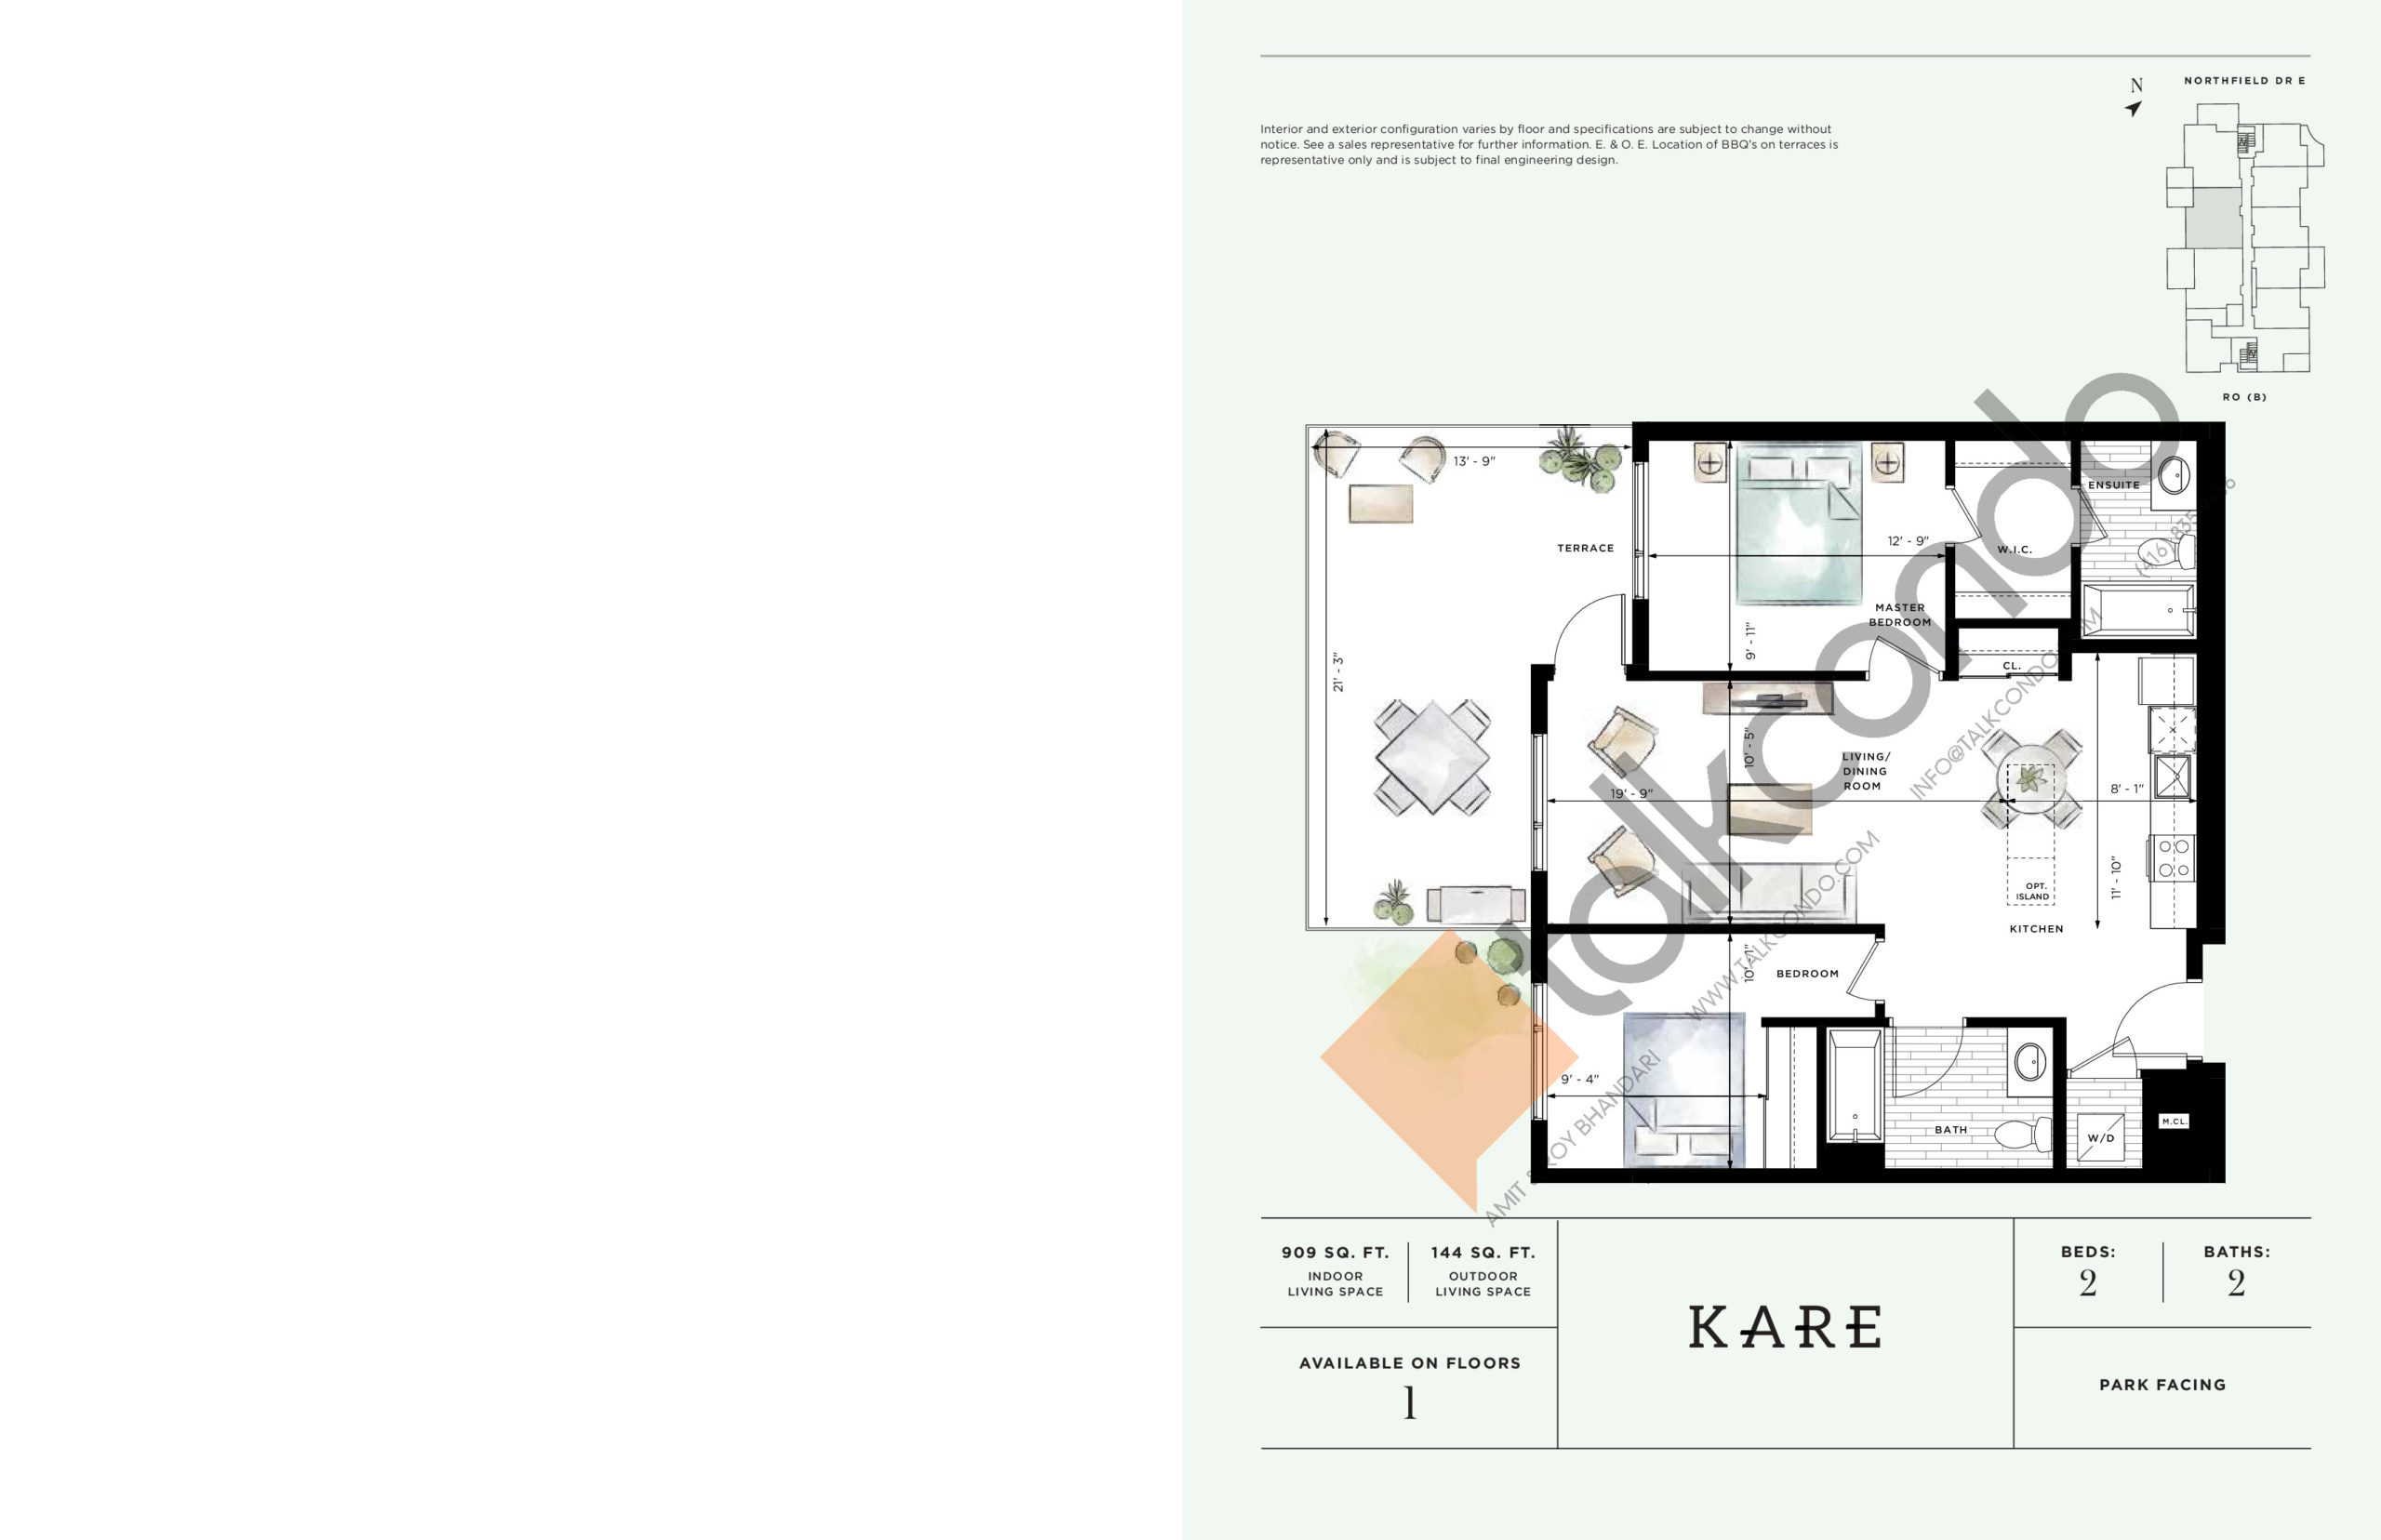 Kare Floor Plan at Ro at Blackstone Condos - 909 sq.ft